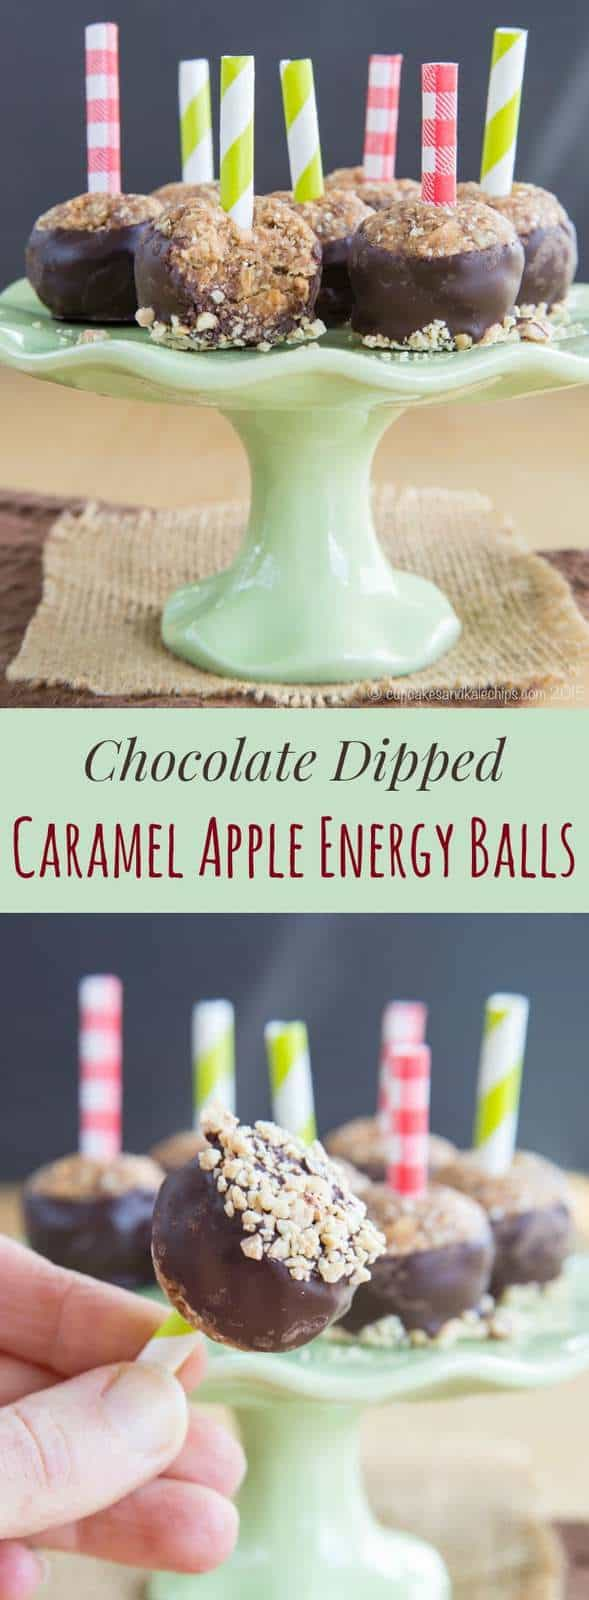 Chocolate Dipped Caramel Apple Energy Balls - a favorite fall sweet treat transformed into a healthy little energy bite! | cupcakesandkalechips.com | gluten free, vegan, nut free, and peanut free options